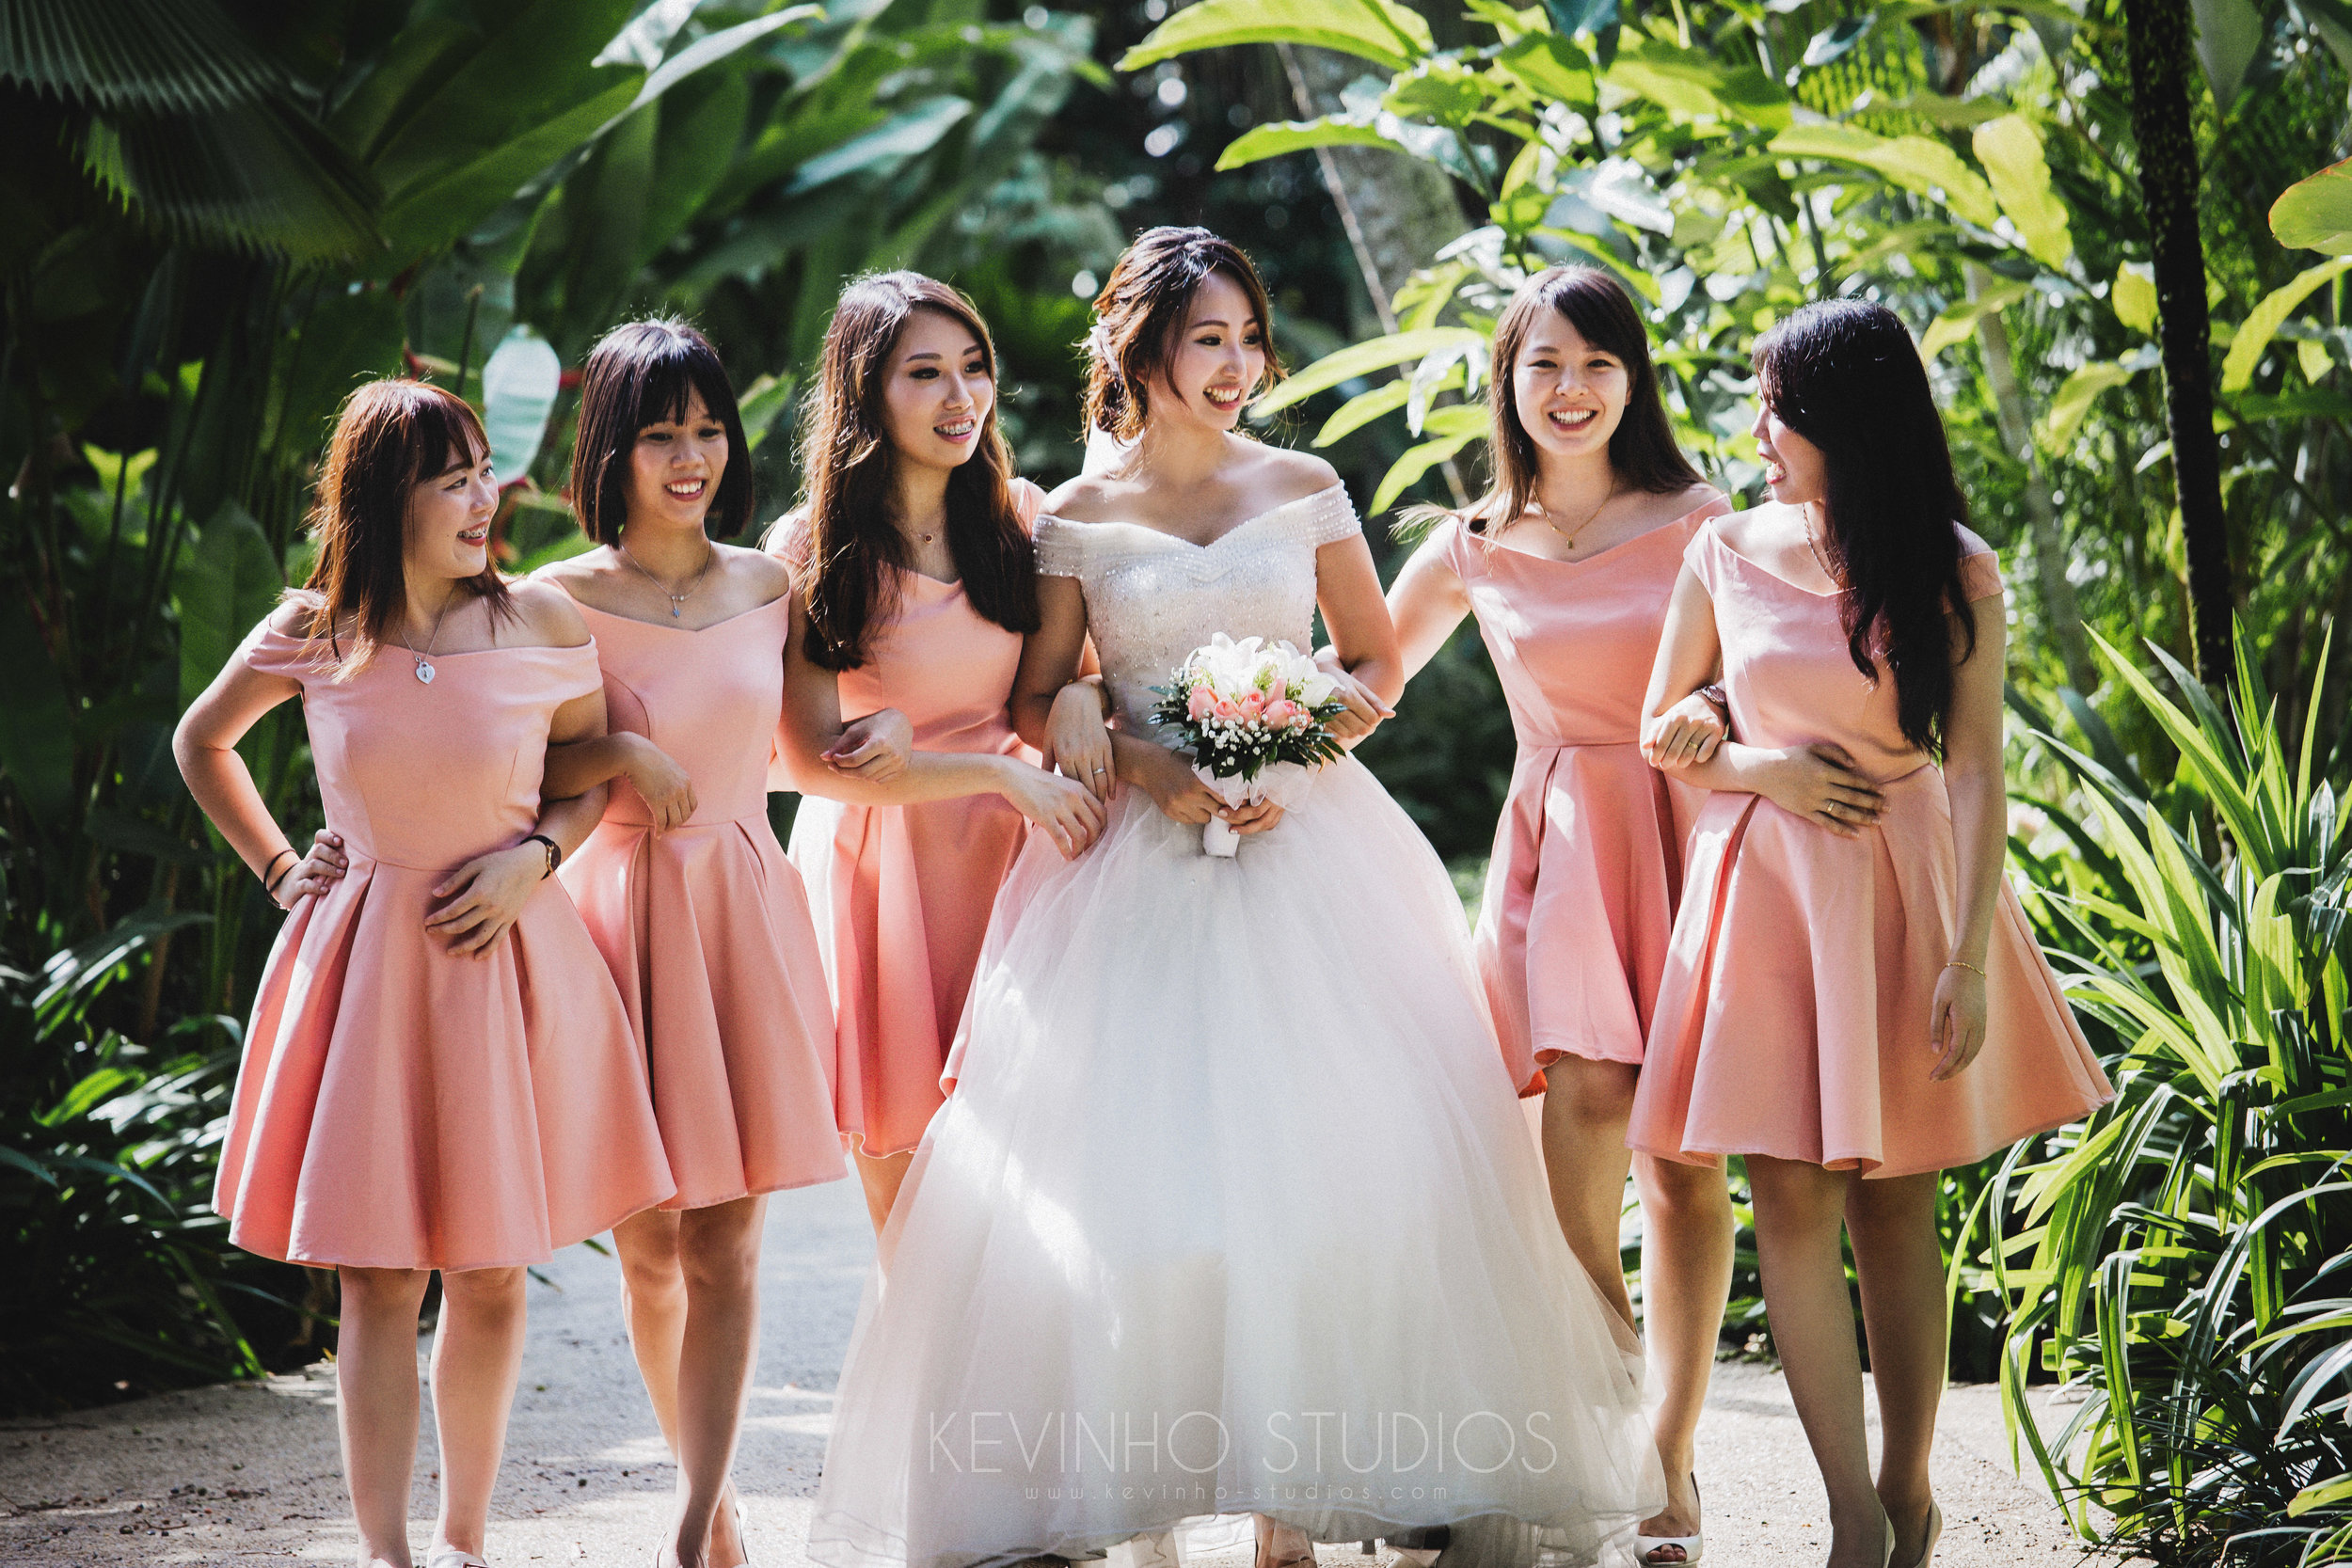 The bride, surrounded by her bridemaids on her actual day.   Photo credits:  Kevin Ho Studios.